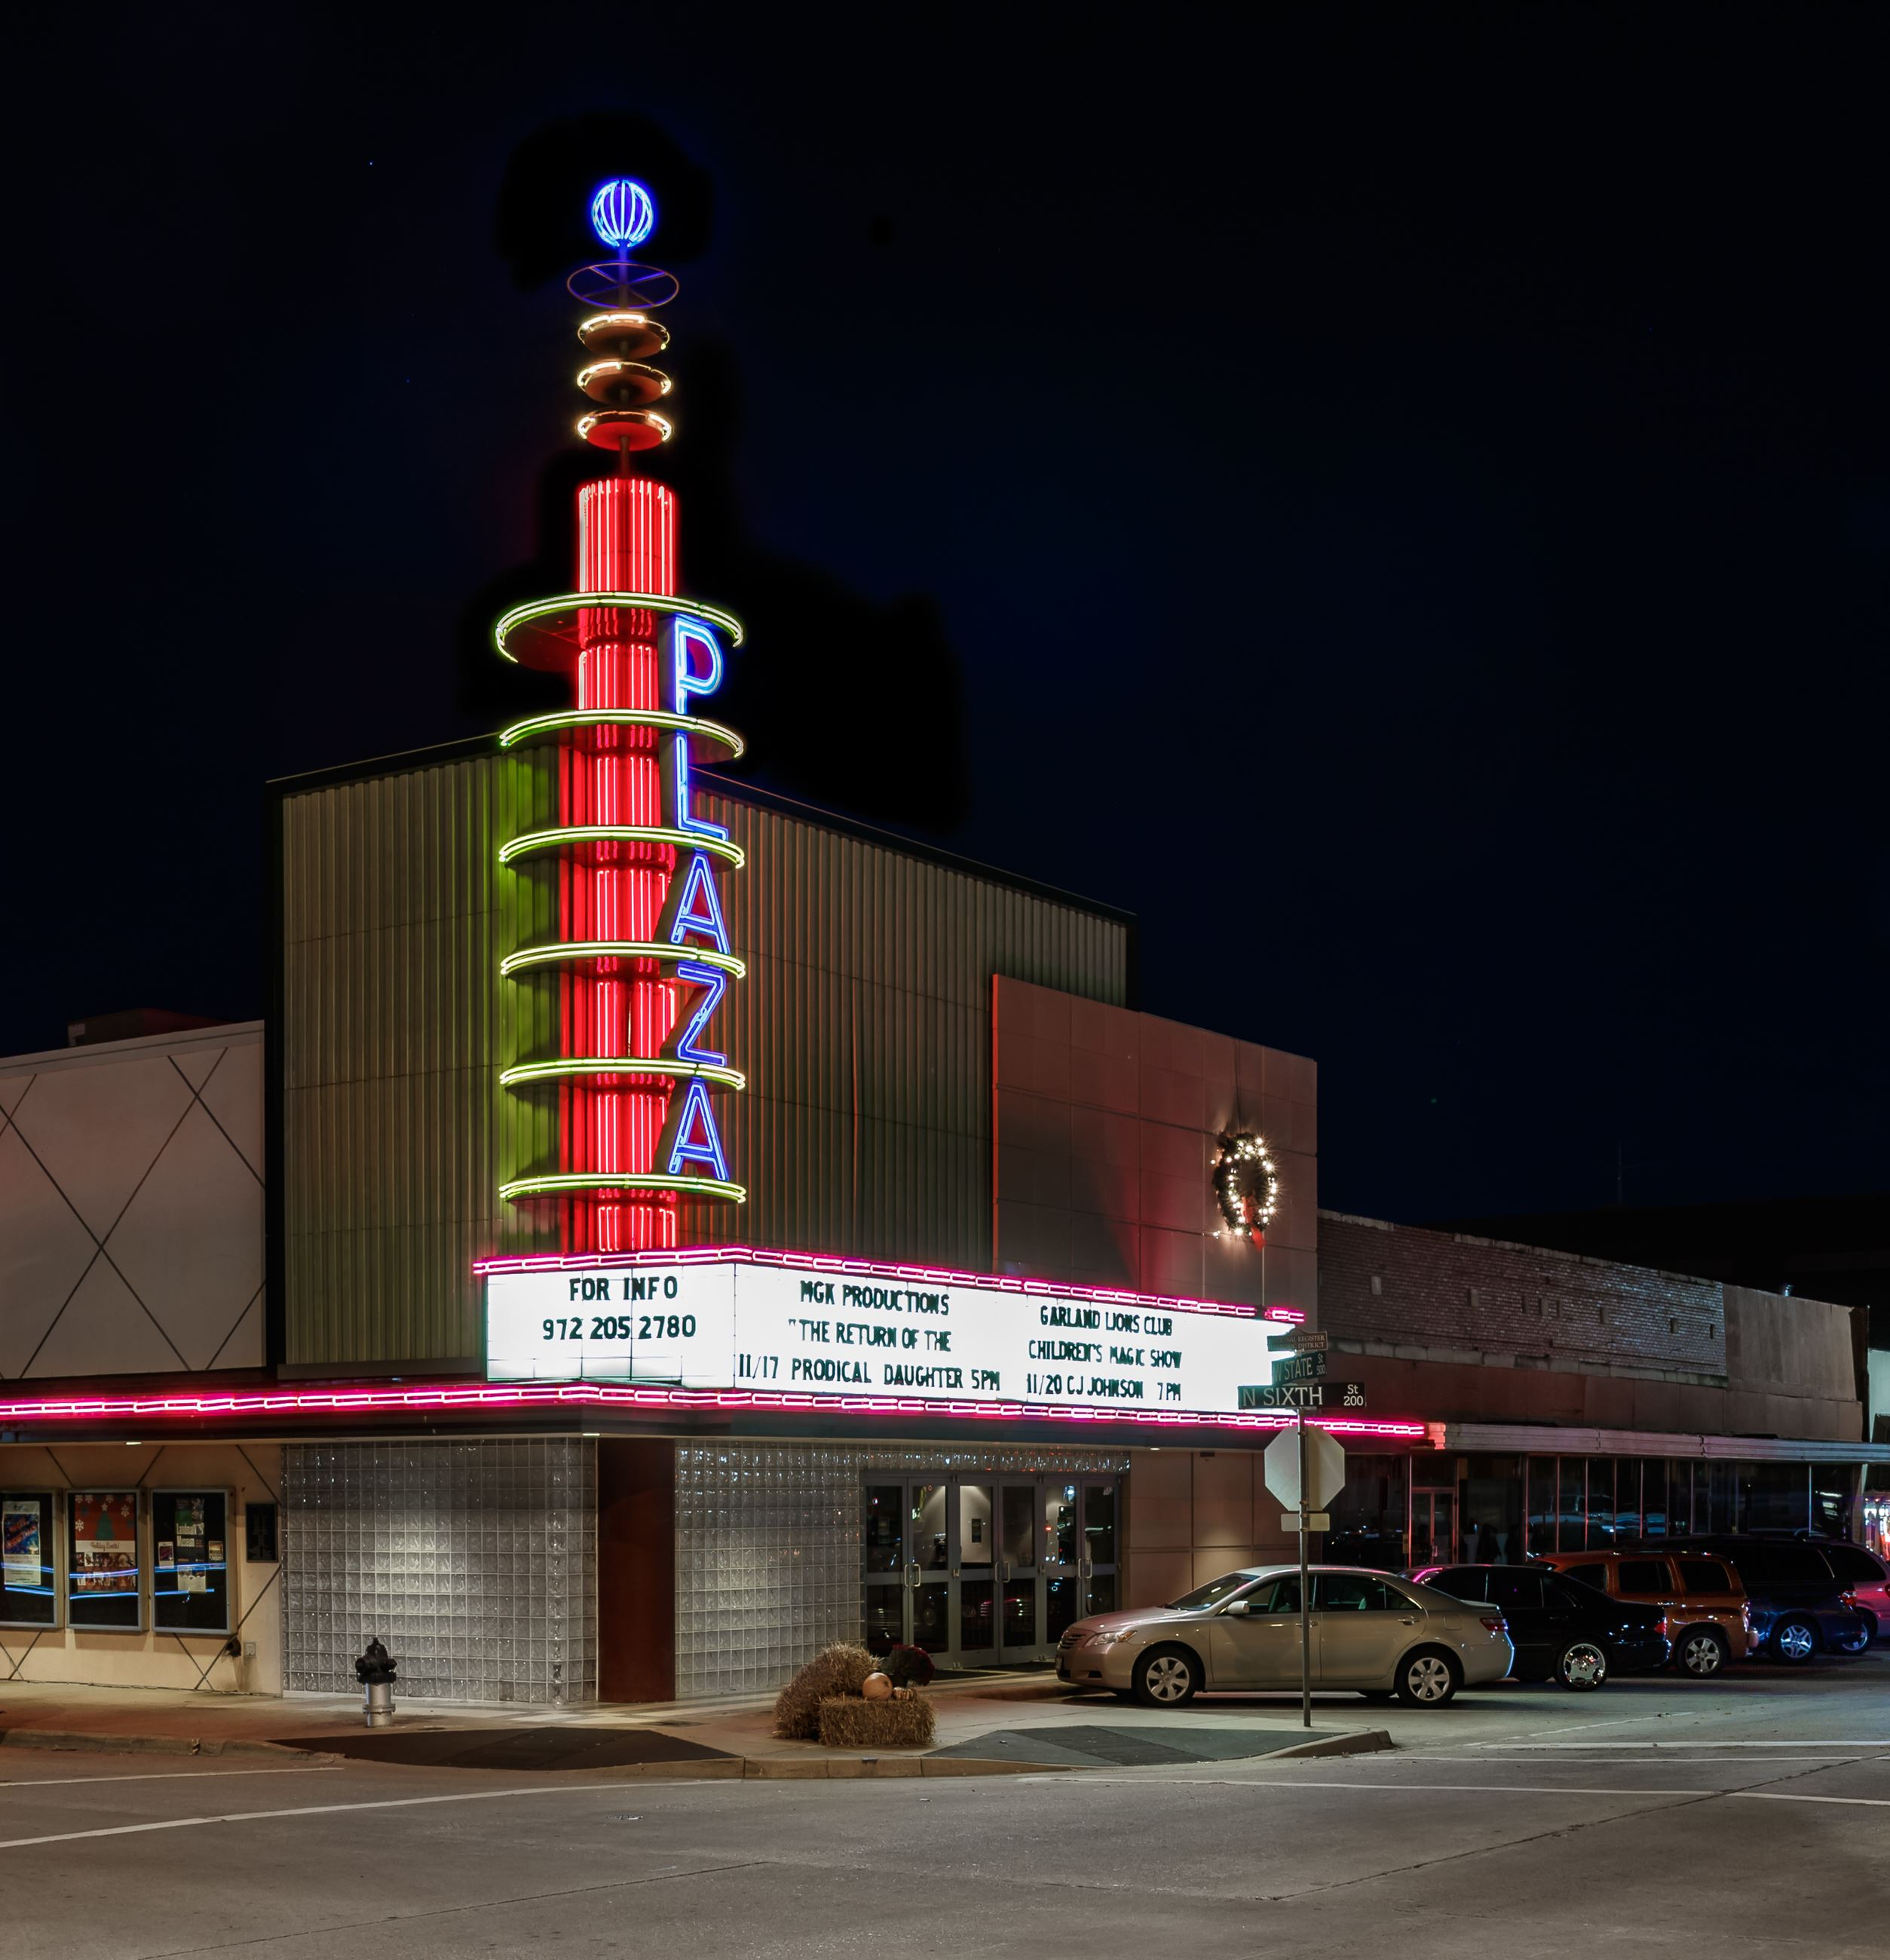 The Plaza Theatre at night